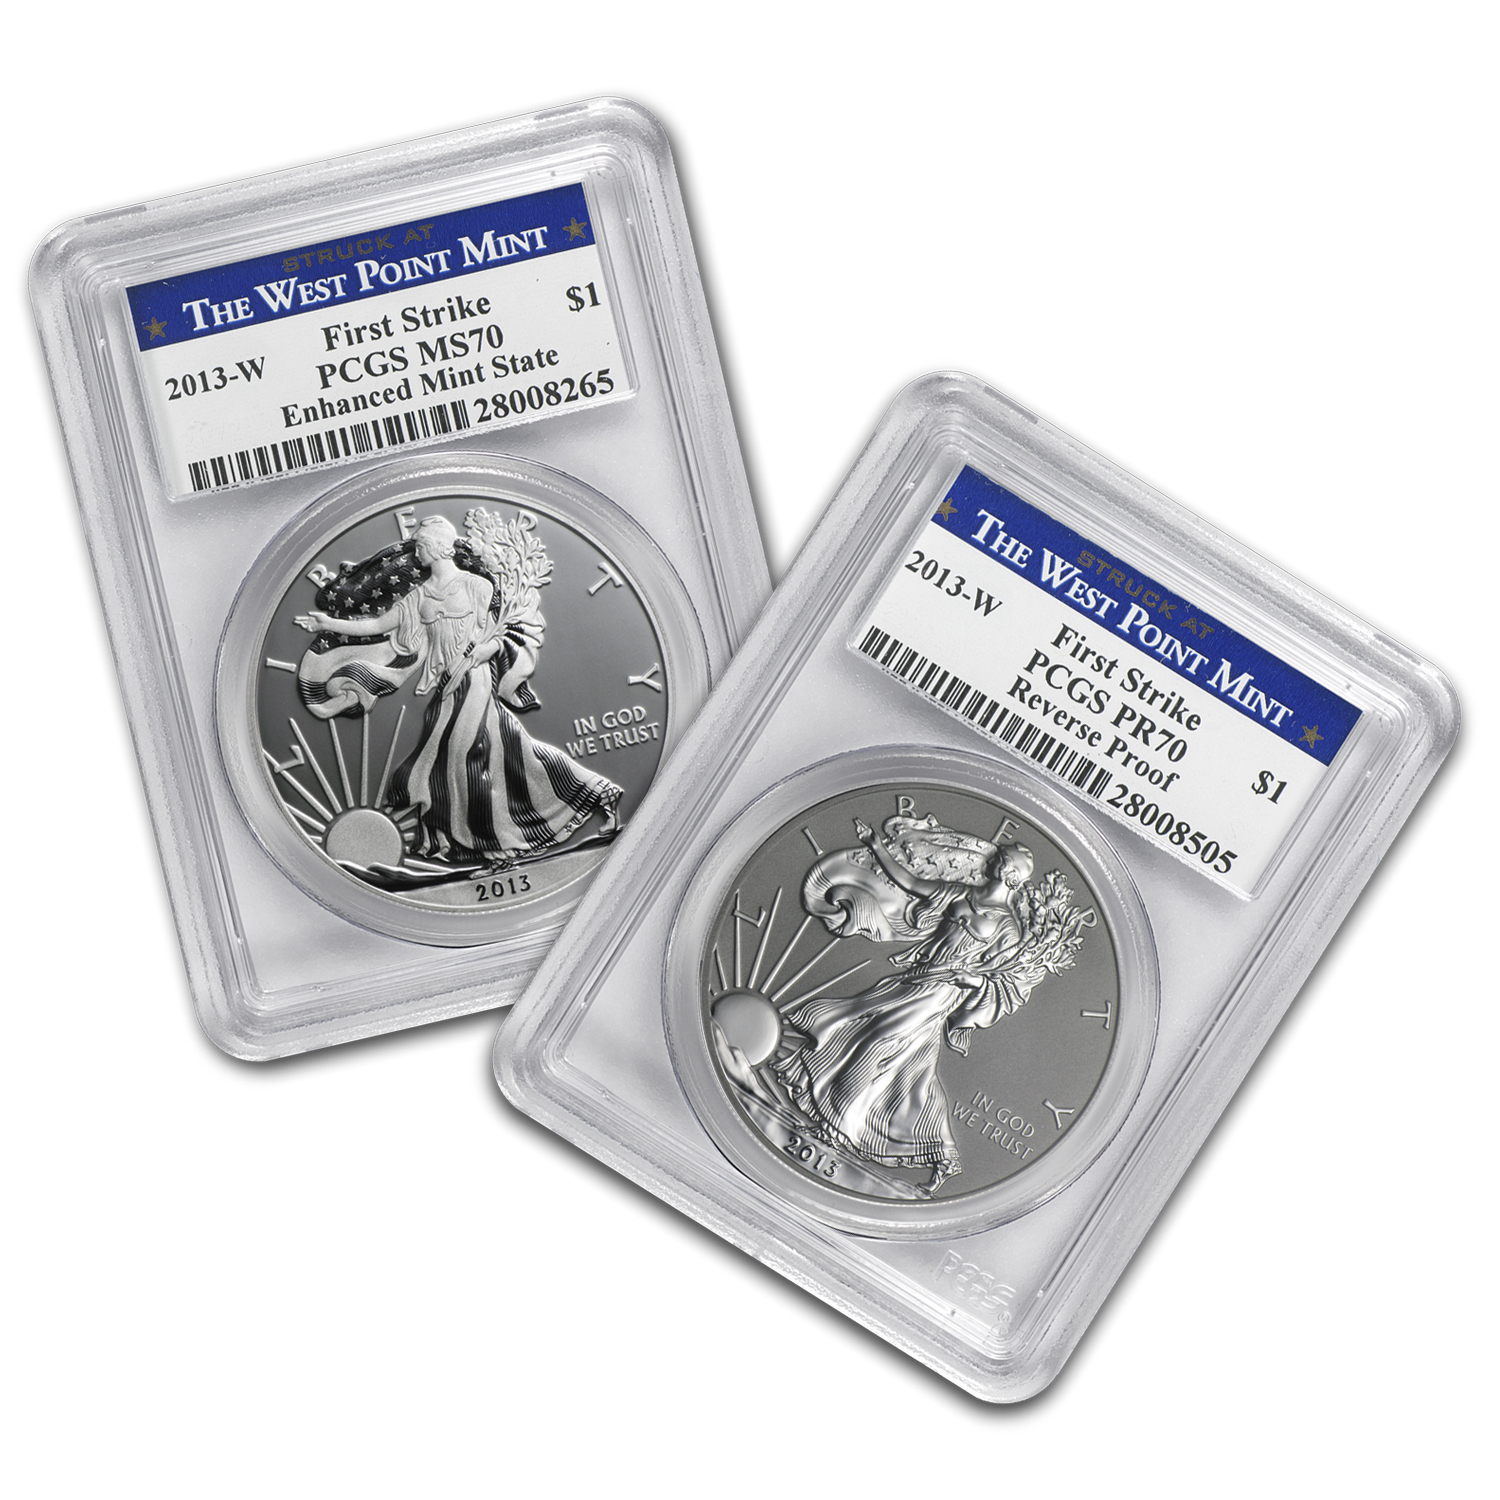 2013 2-Coin Silver Eagle Set MS/PF-70 PCGS (FS, WP, Blue Label)